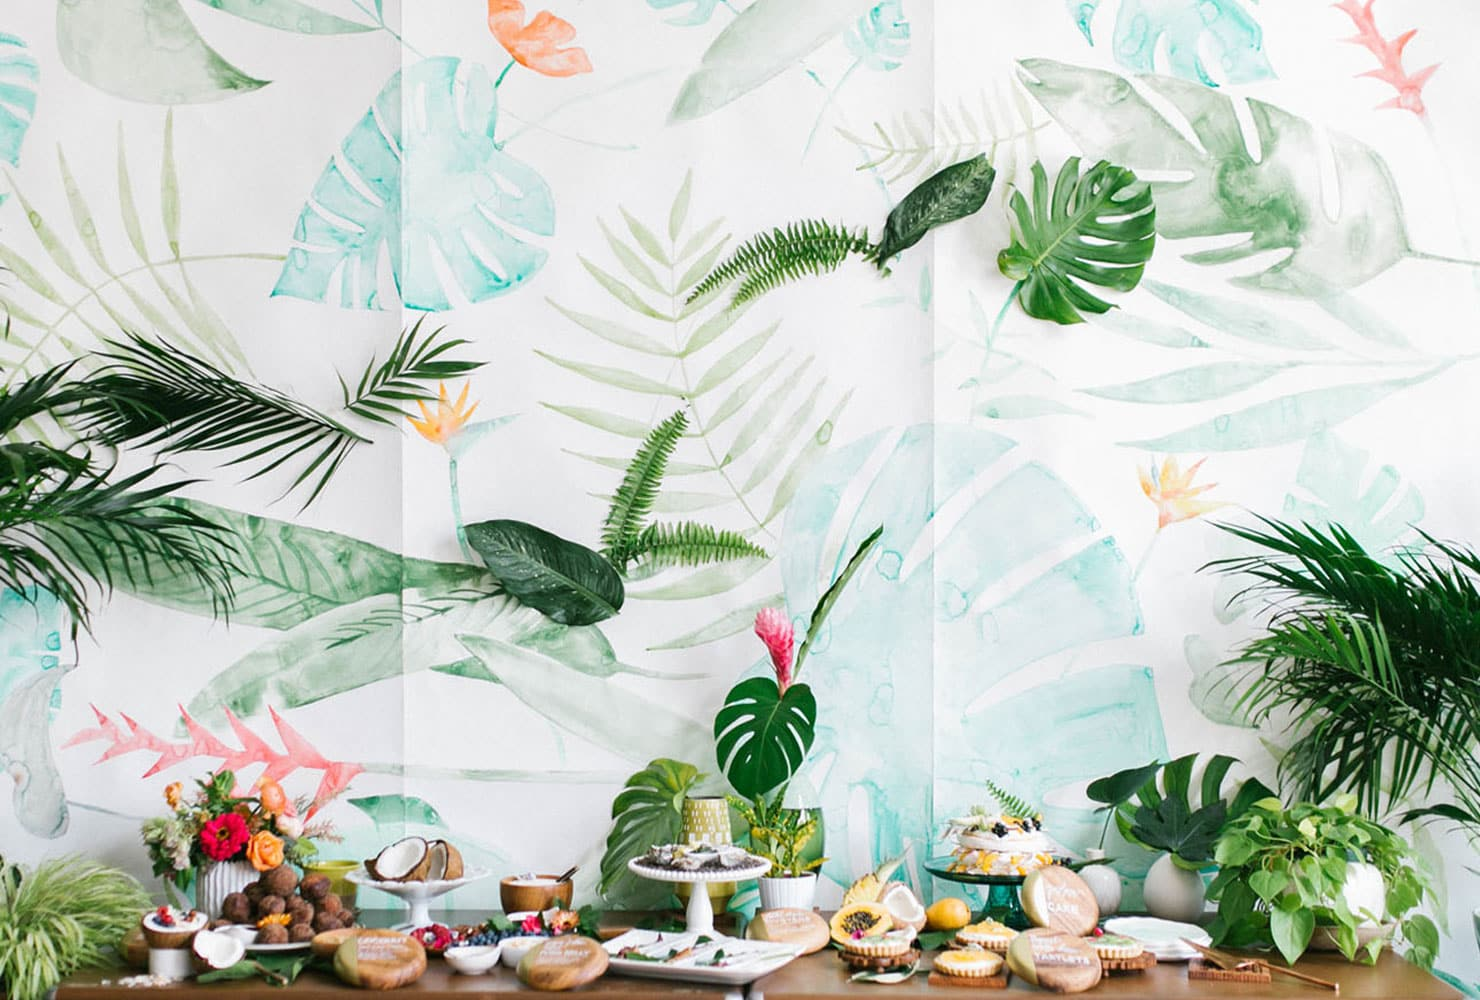 Tropical tablescape with palm leaves and coconut accents